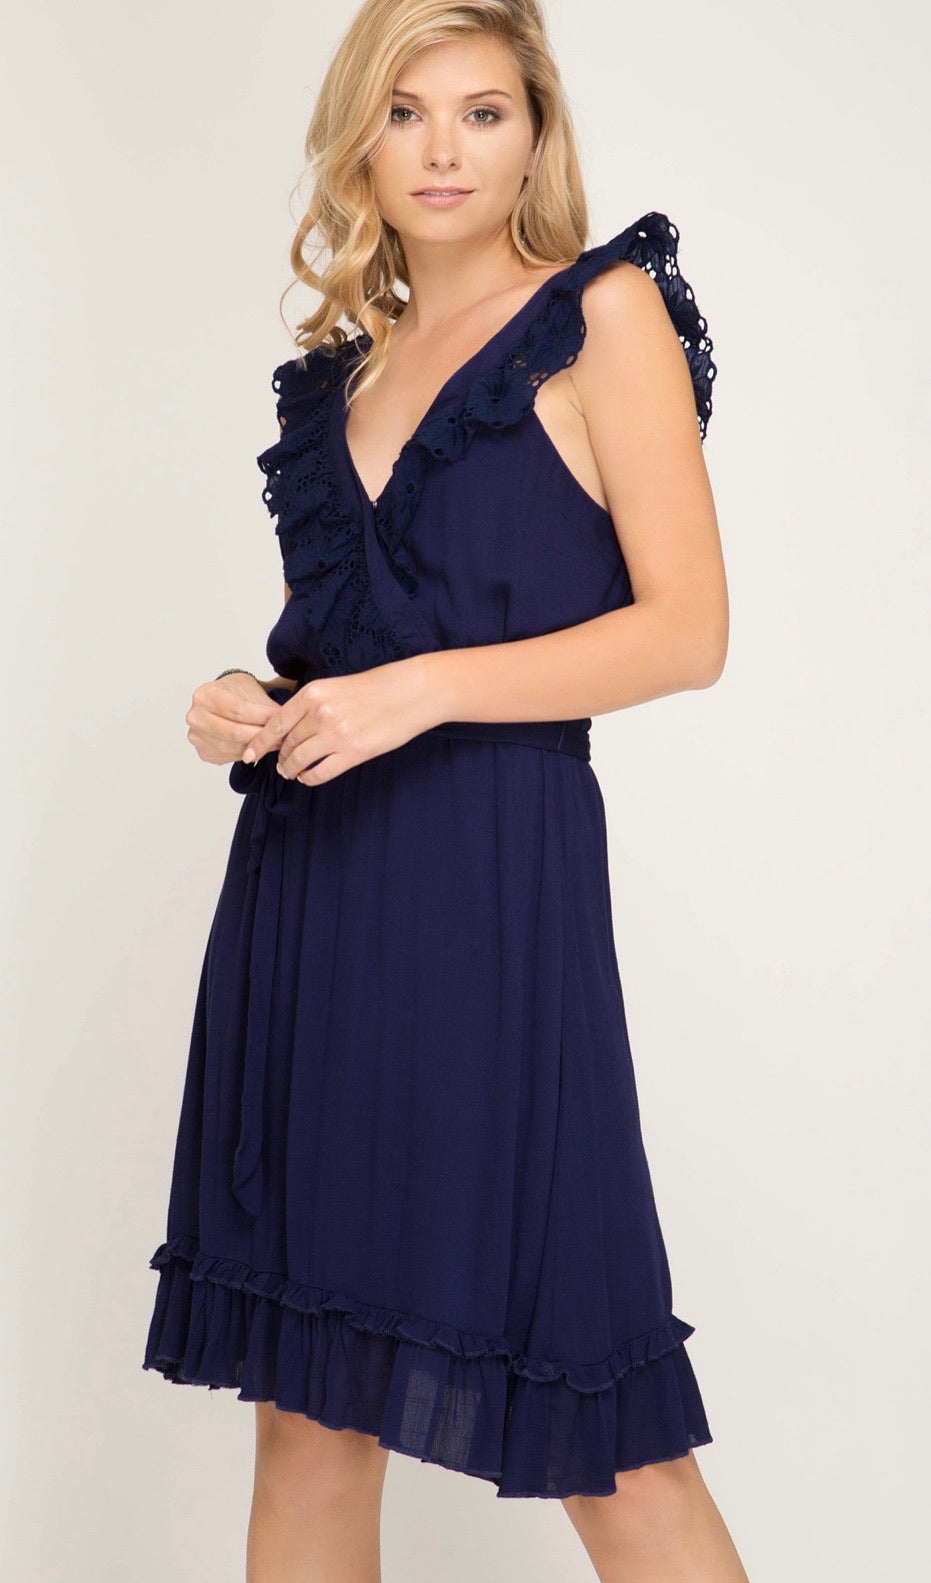 Sleeveless Surplice Woven Dress